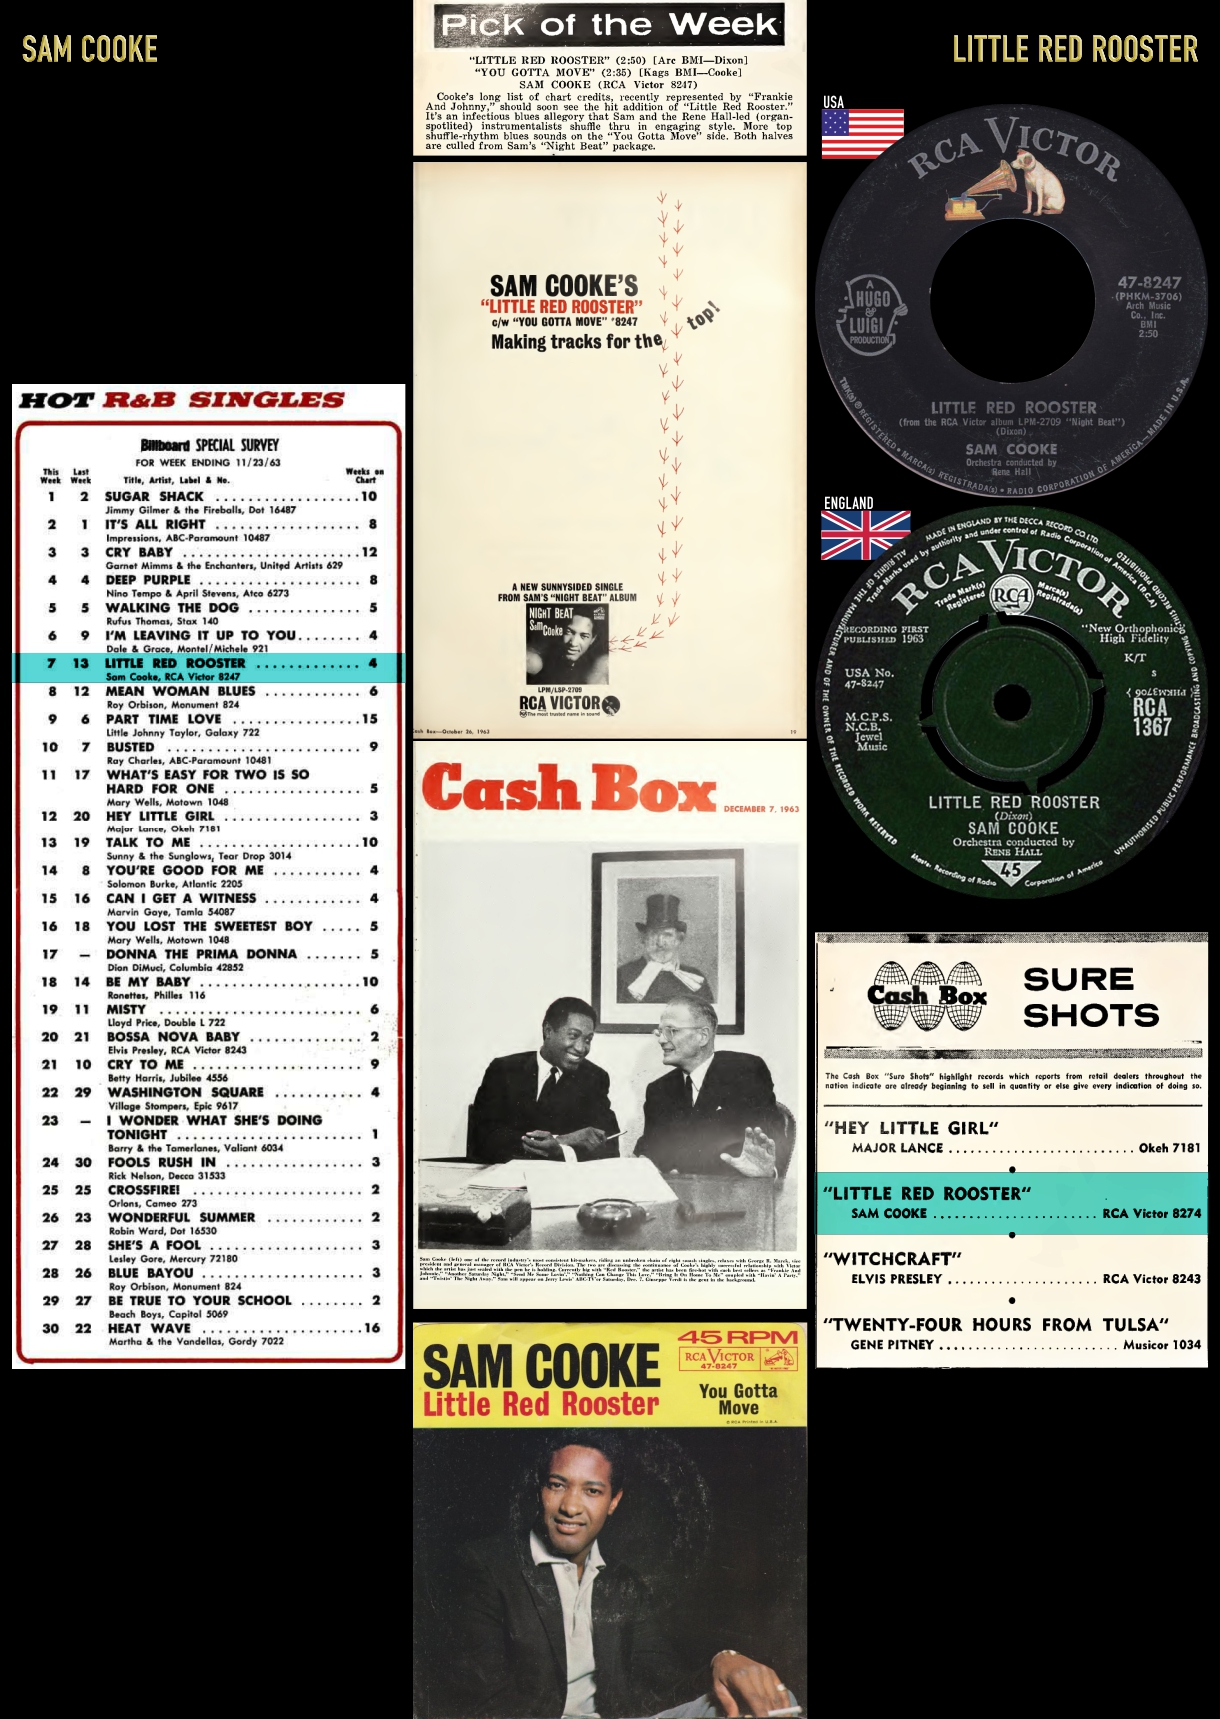 631026_Sam Cooke_Little Red Rooster